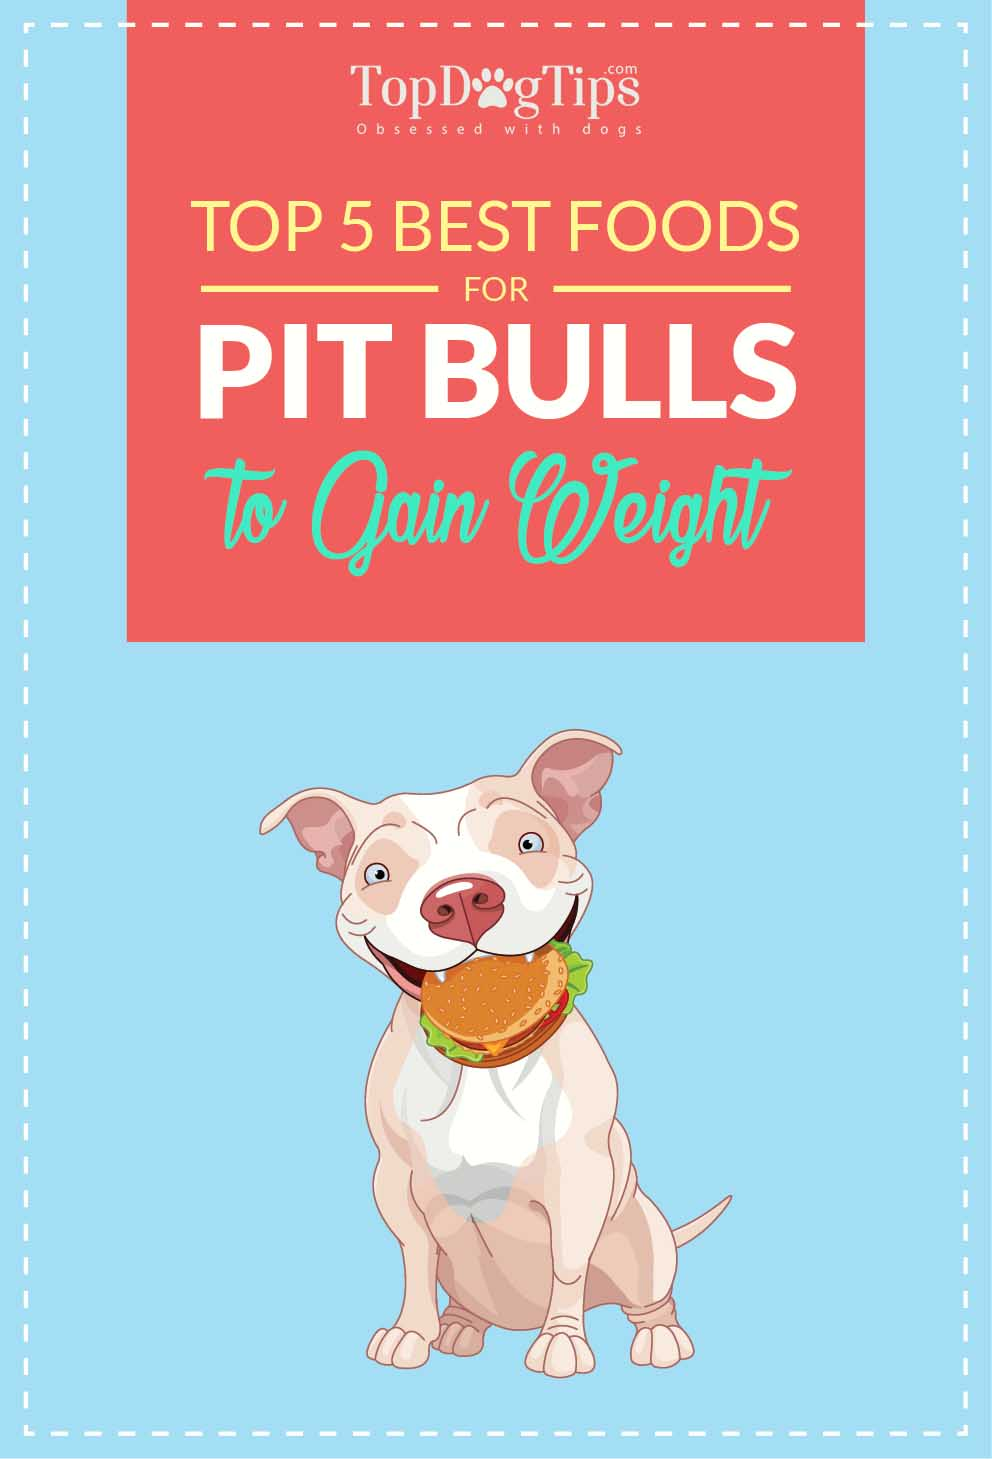 Top 5 best dog food for pitbulls to gain weight and lean muscle 2018 top best dog foods for pitbulls to gain weight nvjuhfo Gallery